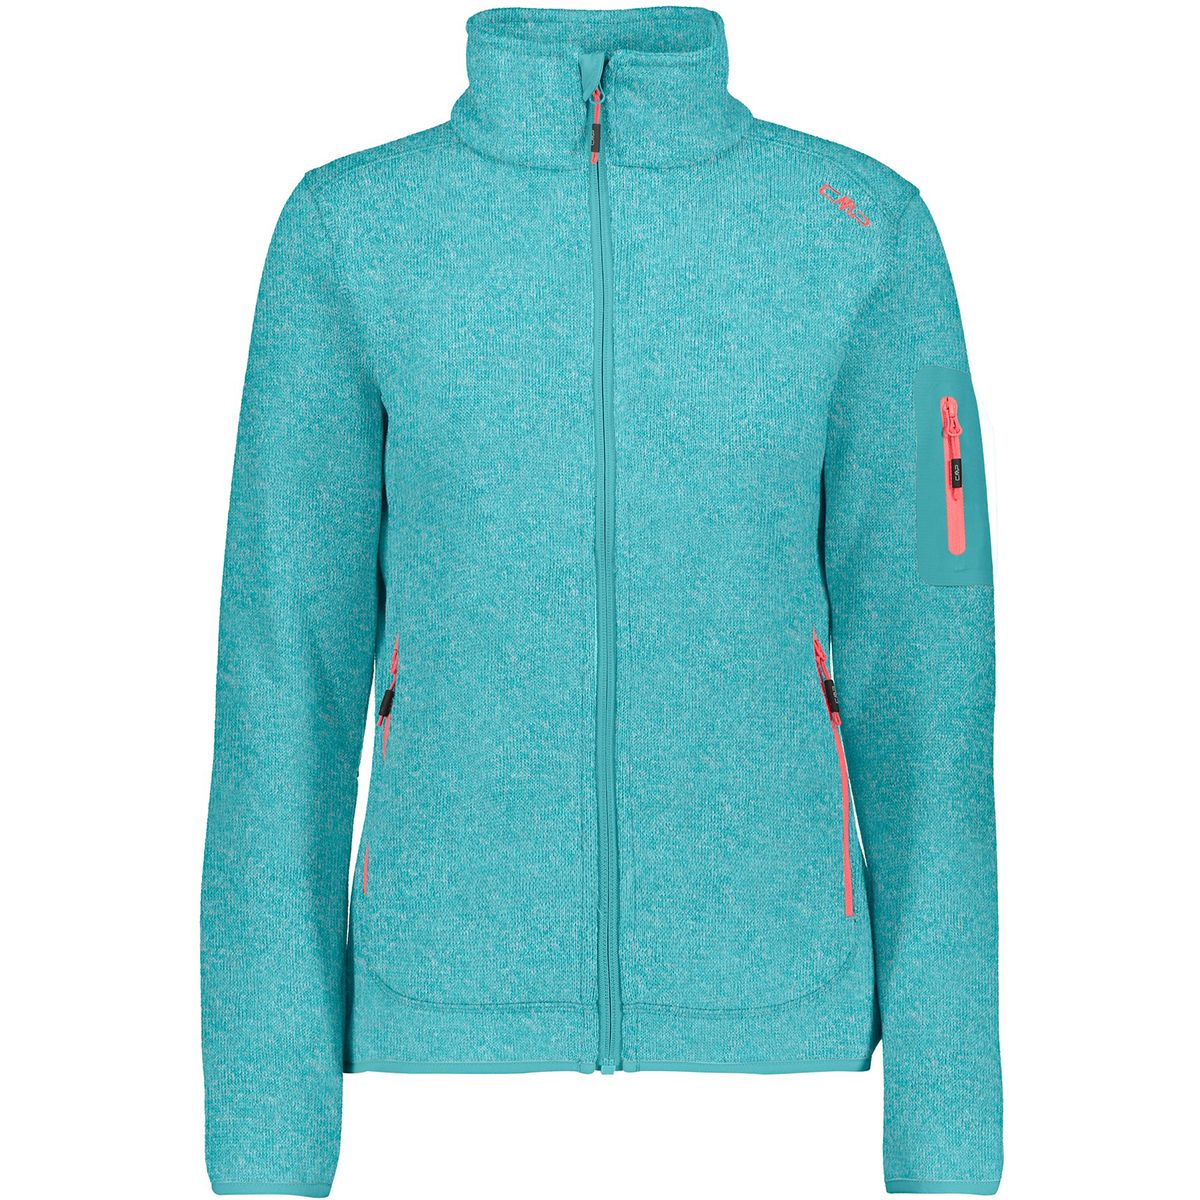 CMP Damen Strick Fleece Jacke (Größe M, Blau) | Fleecejacken > Damen